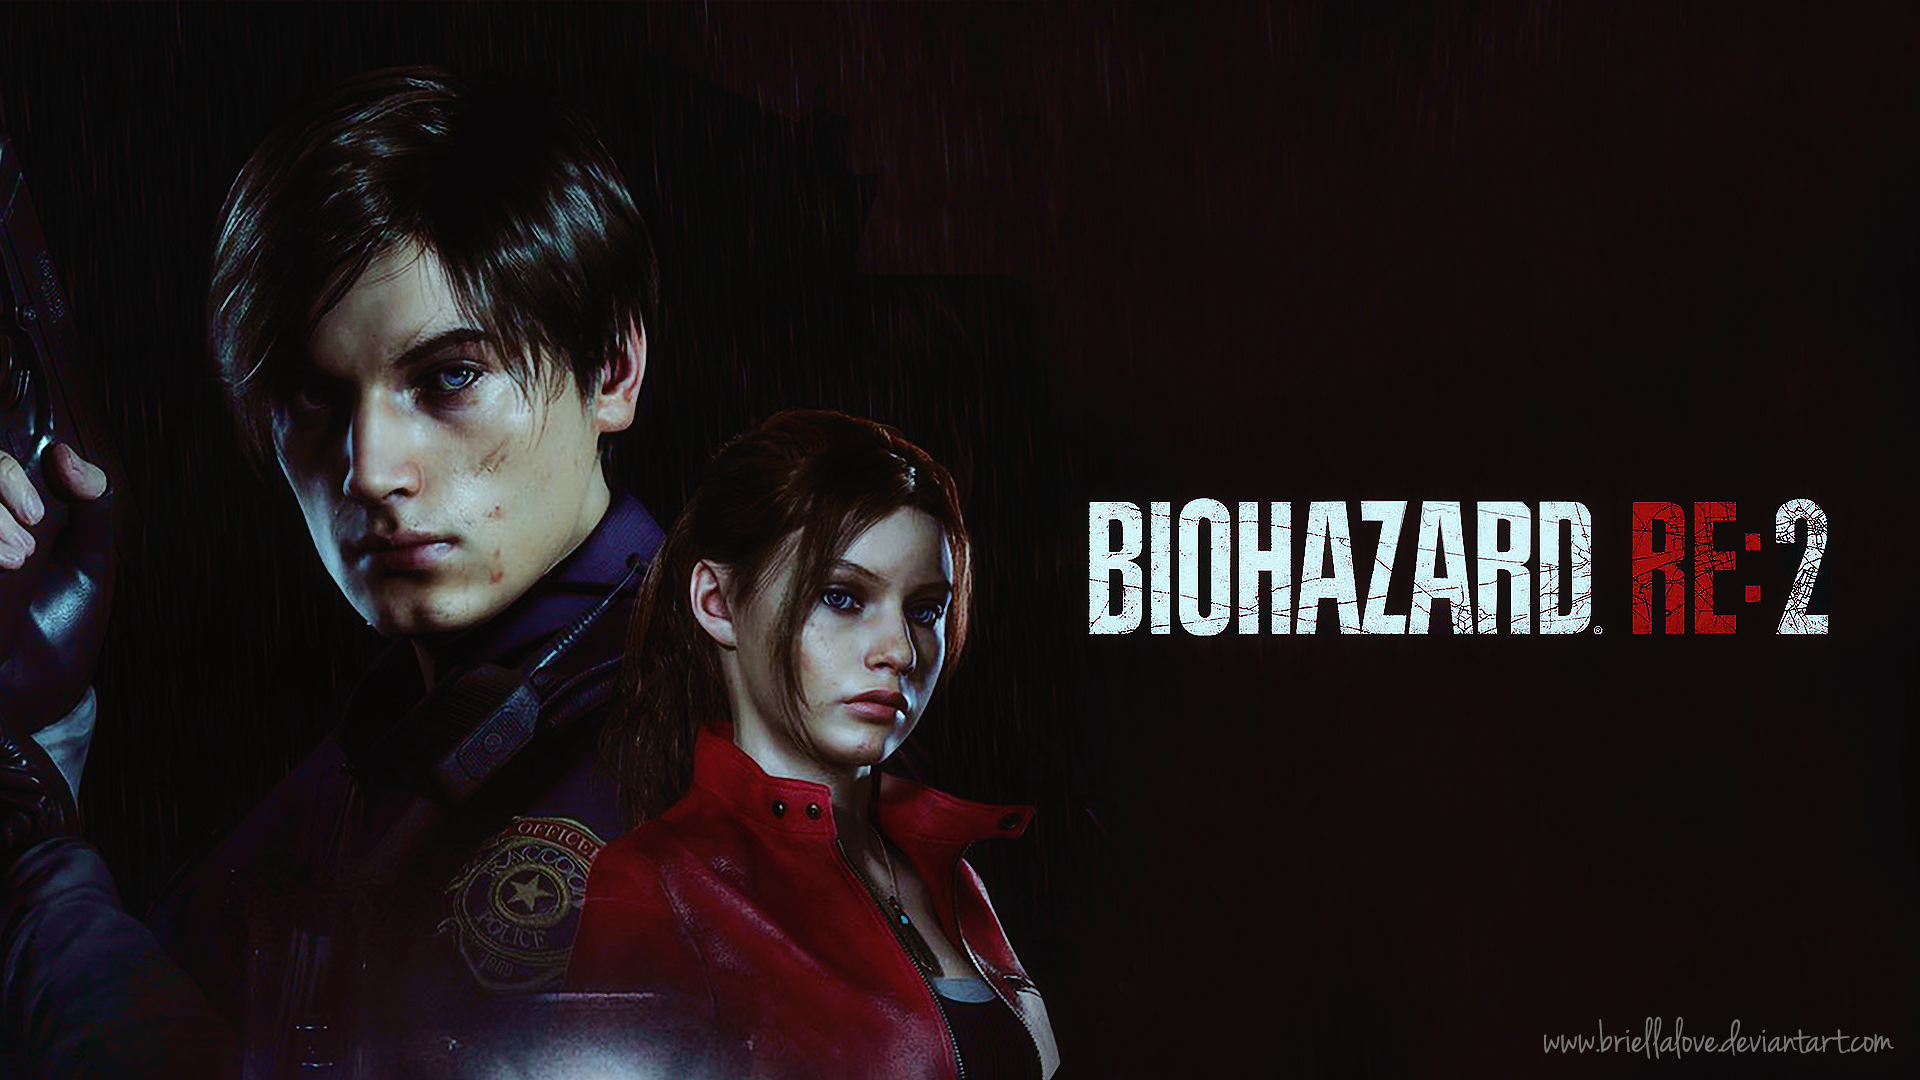 Resident Evil 2 Remake Wallpaper Hd By Briellalove On Deviantart